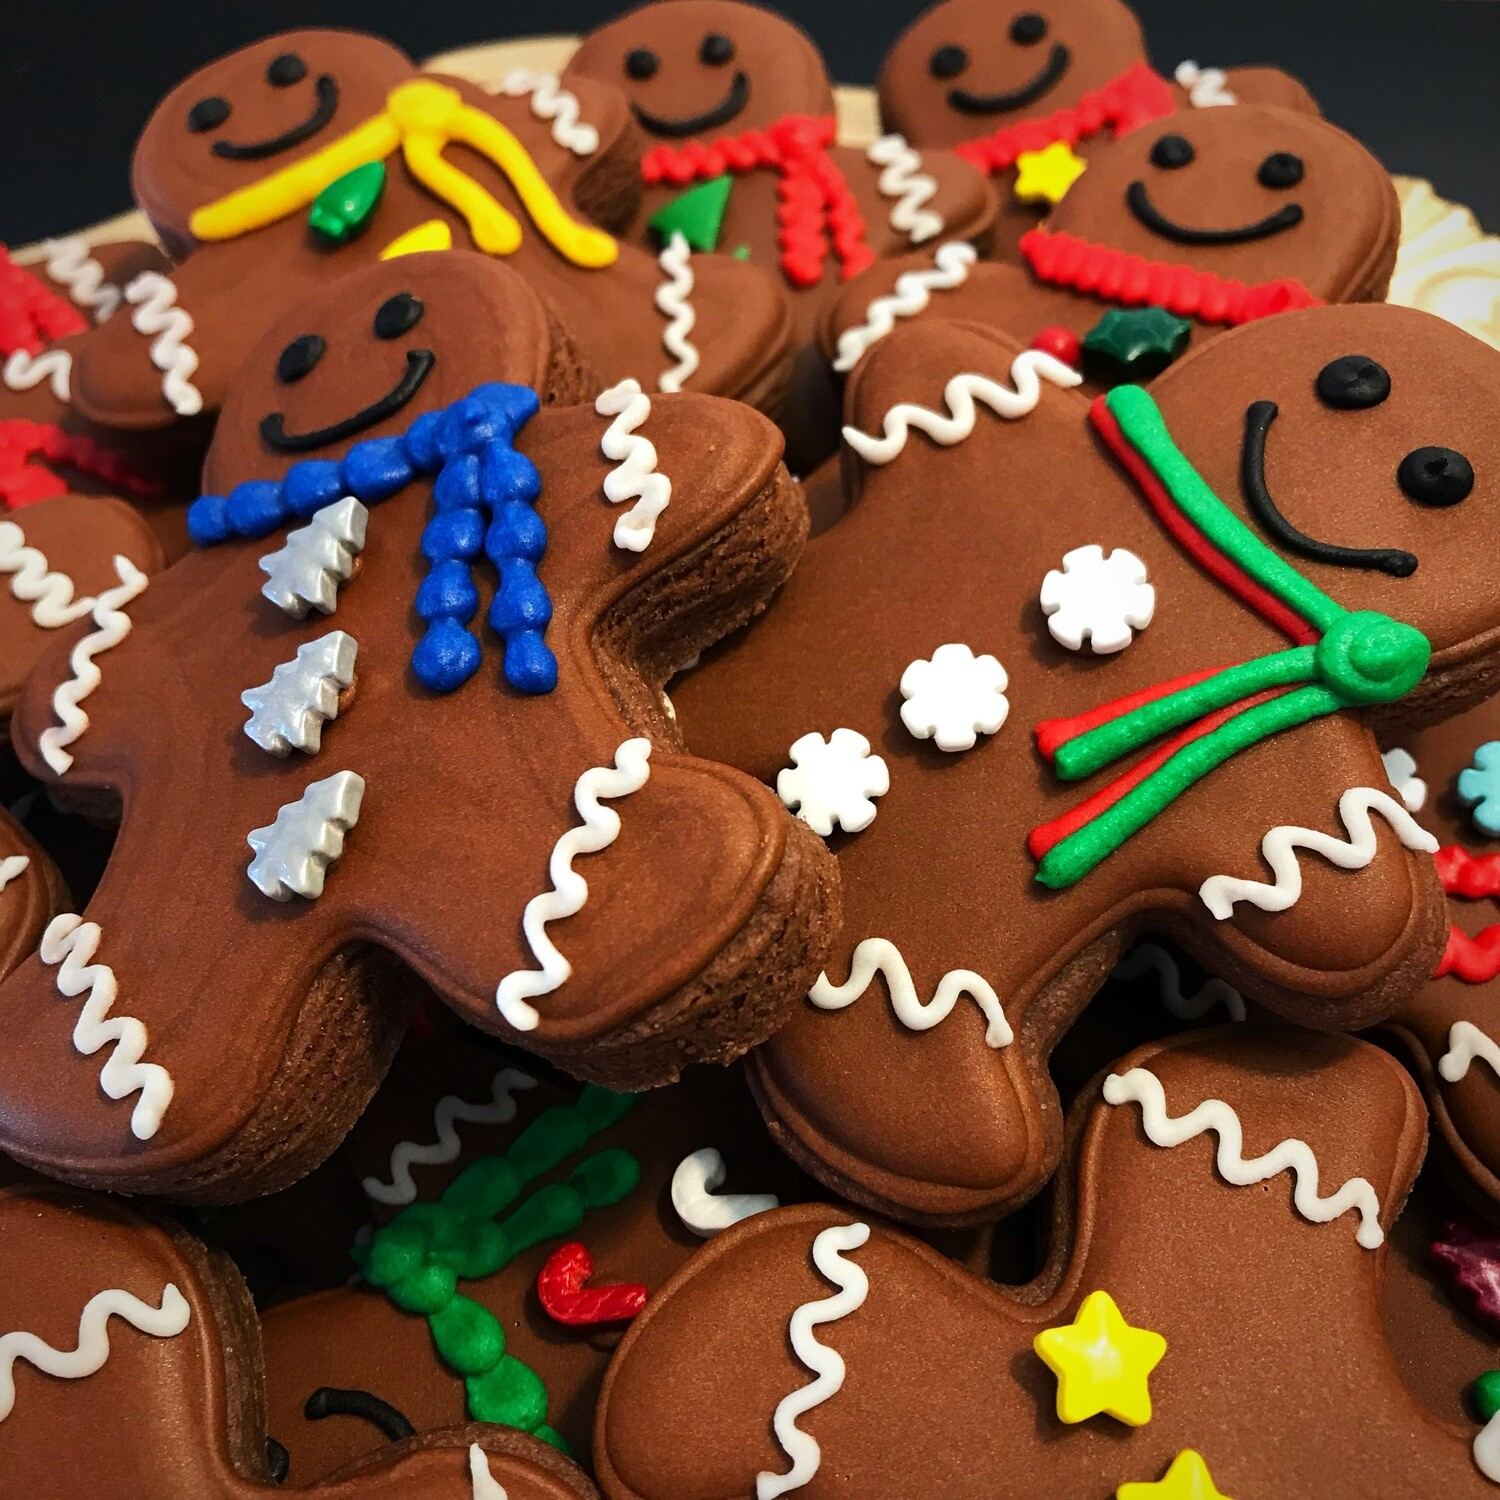 GINGERBREAD MEN (1 DOZEN)